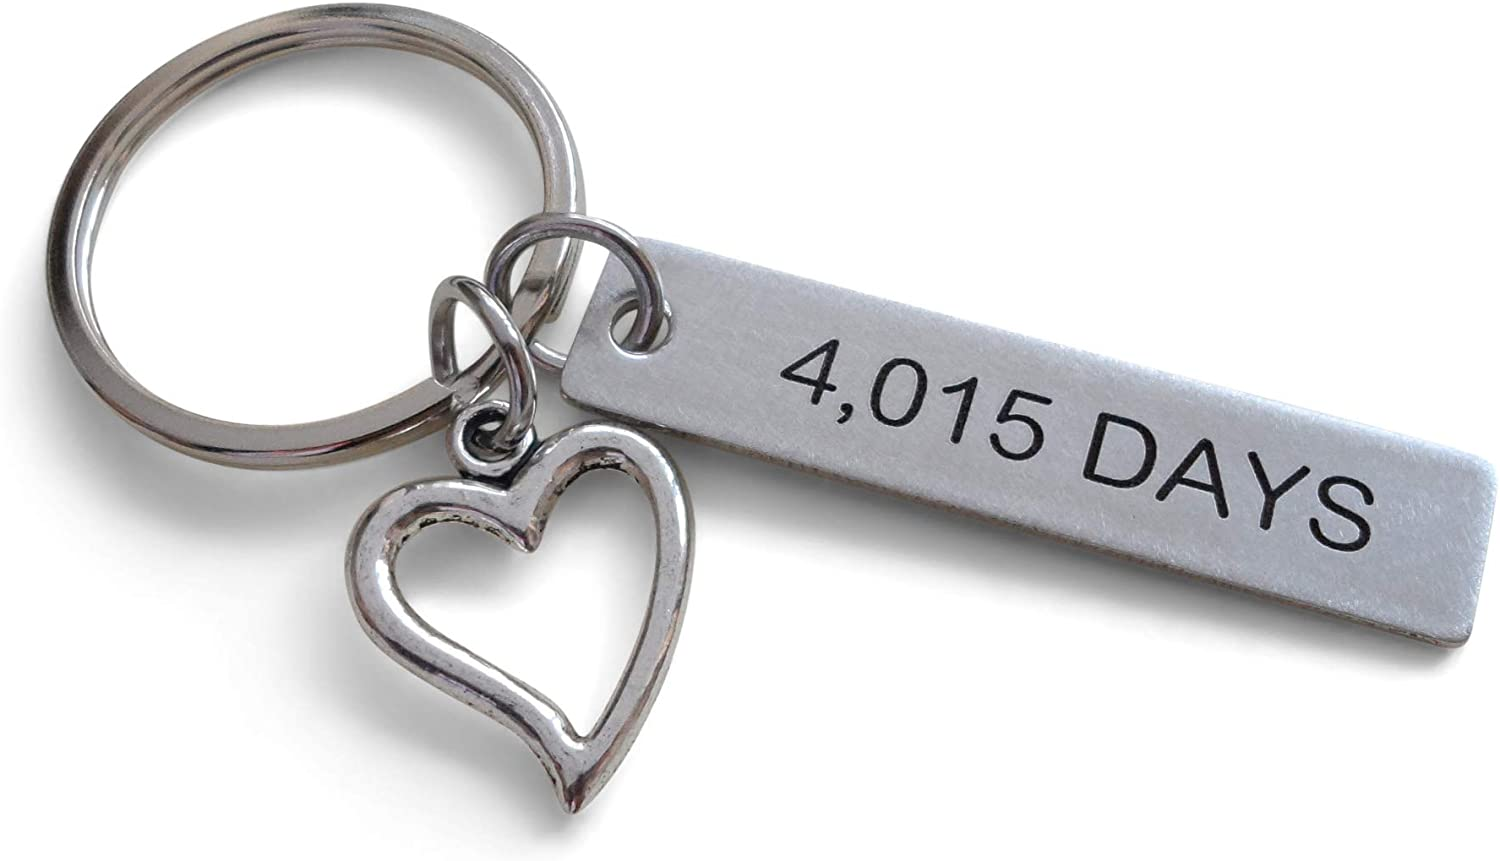 Amazon Com Stainless Steel Tag Keychain Engraved With 4 015 Days With Heart Charm 11 Year Anniversary Couples Keychain Office Products